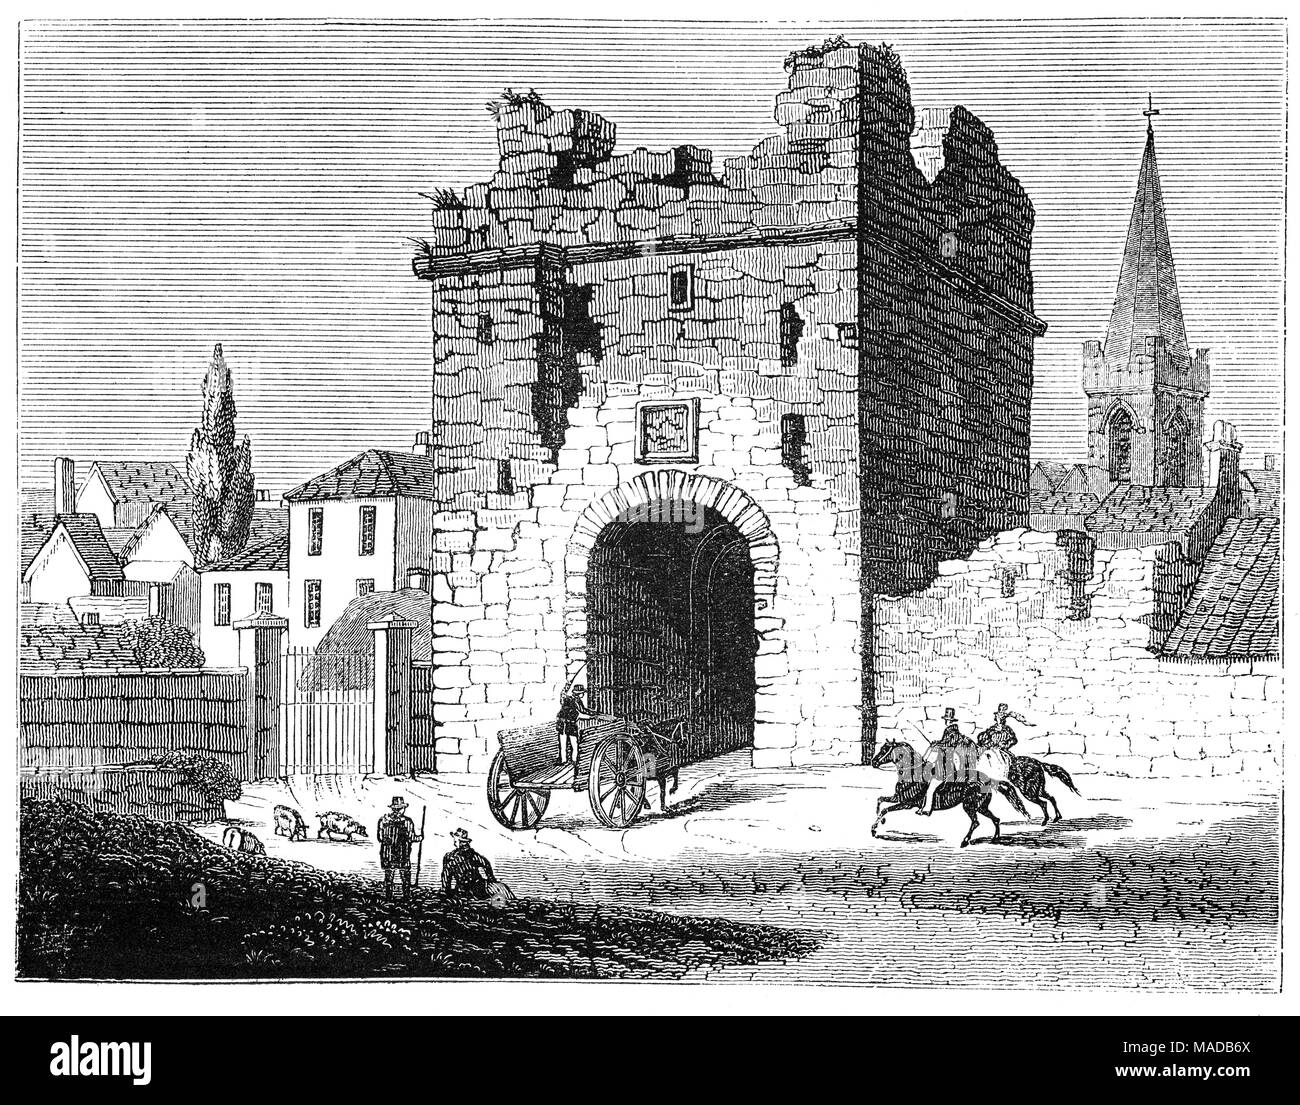 The sixteenth century North Gate (now demolished)  which formed part of the Town Walls of Athlone. The town  owes much to the location of a strategic ford (river crossing point) on the River Shannon. It straddles the border between County Westmeath and County Roscommon, Ireland. - Stock Image